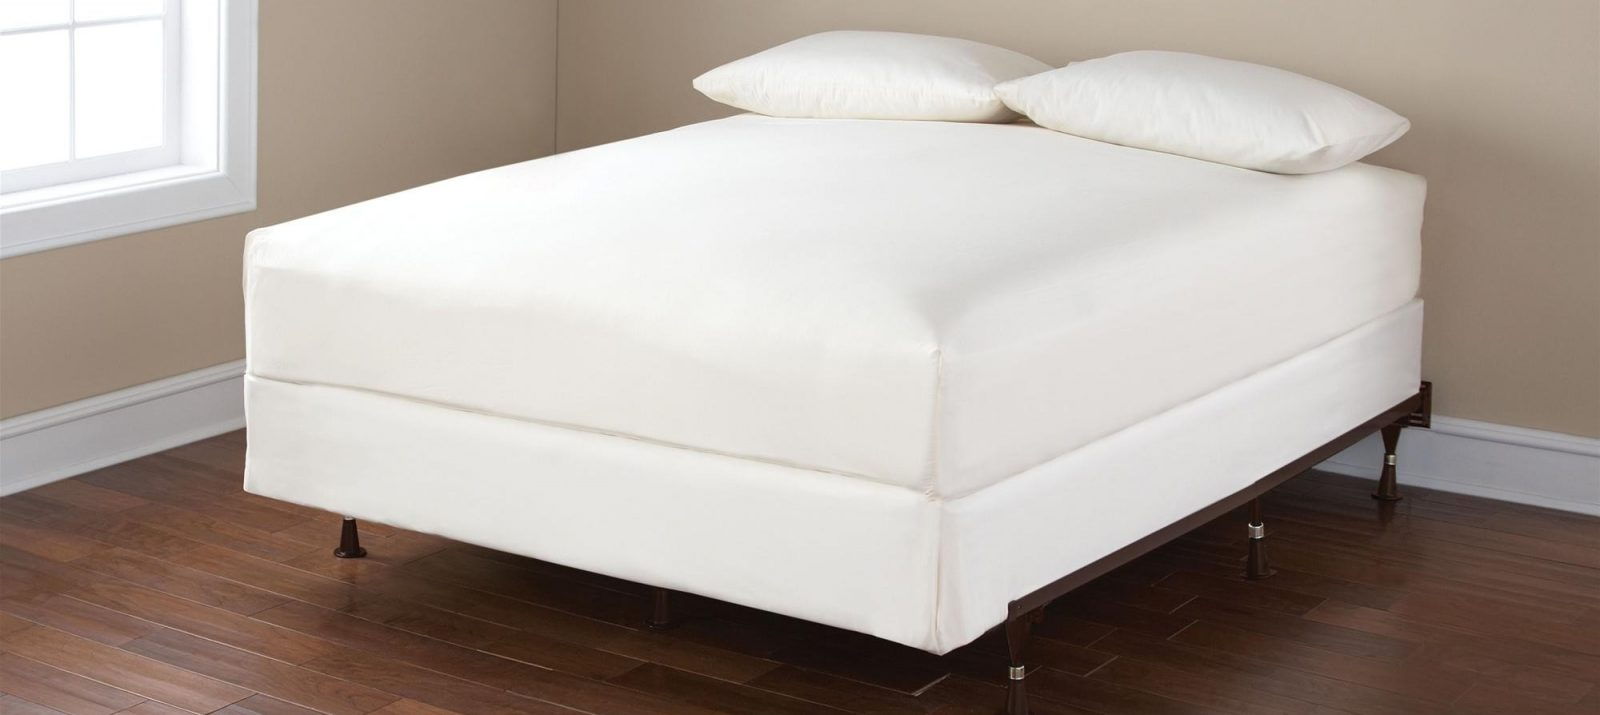 Full Bed Mattress How To Store A Mattress Box Spring And Bed Frame